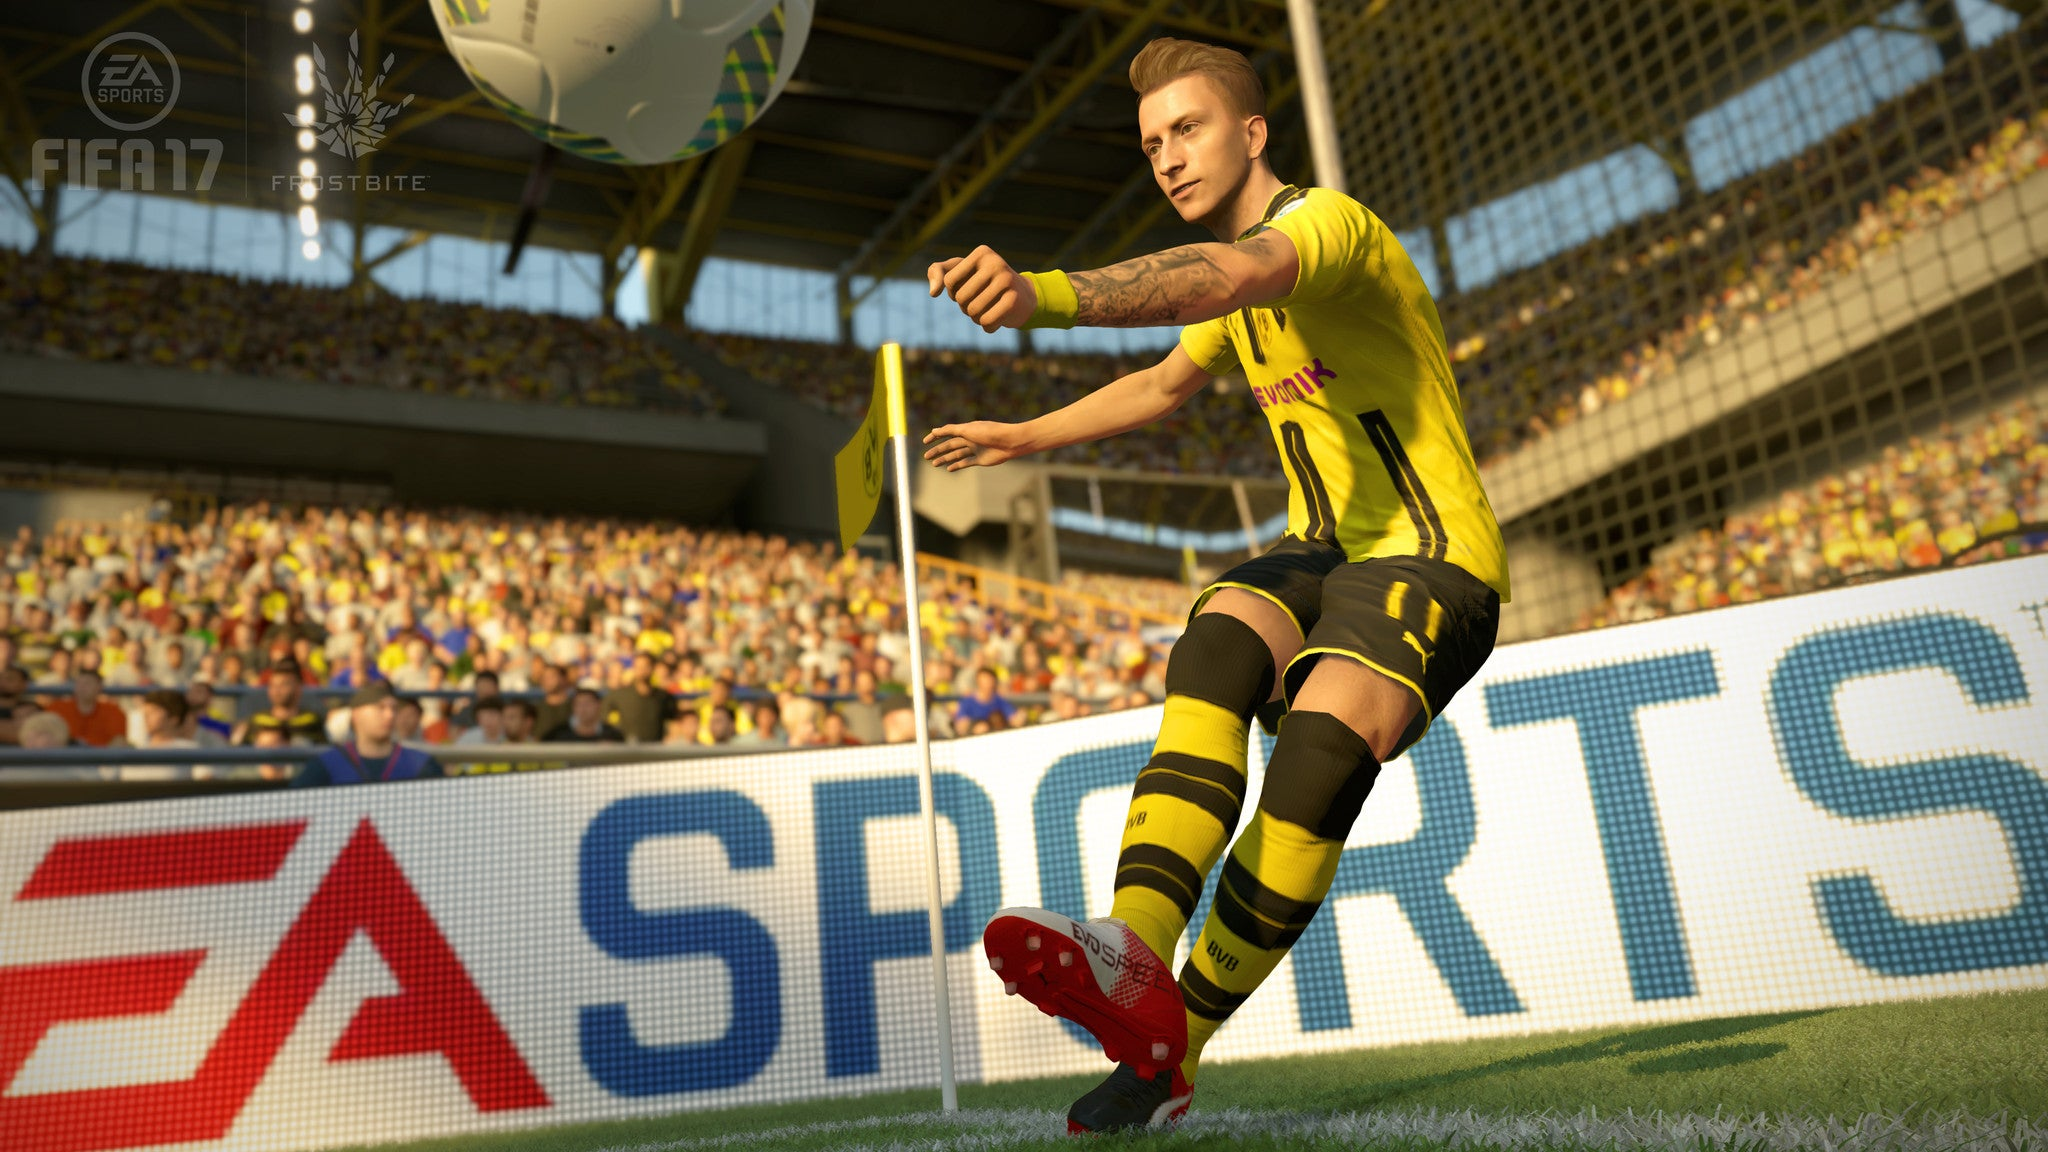 FIFA17 - Standard Edition for PS4